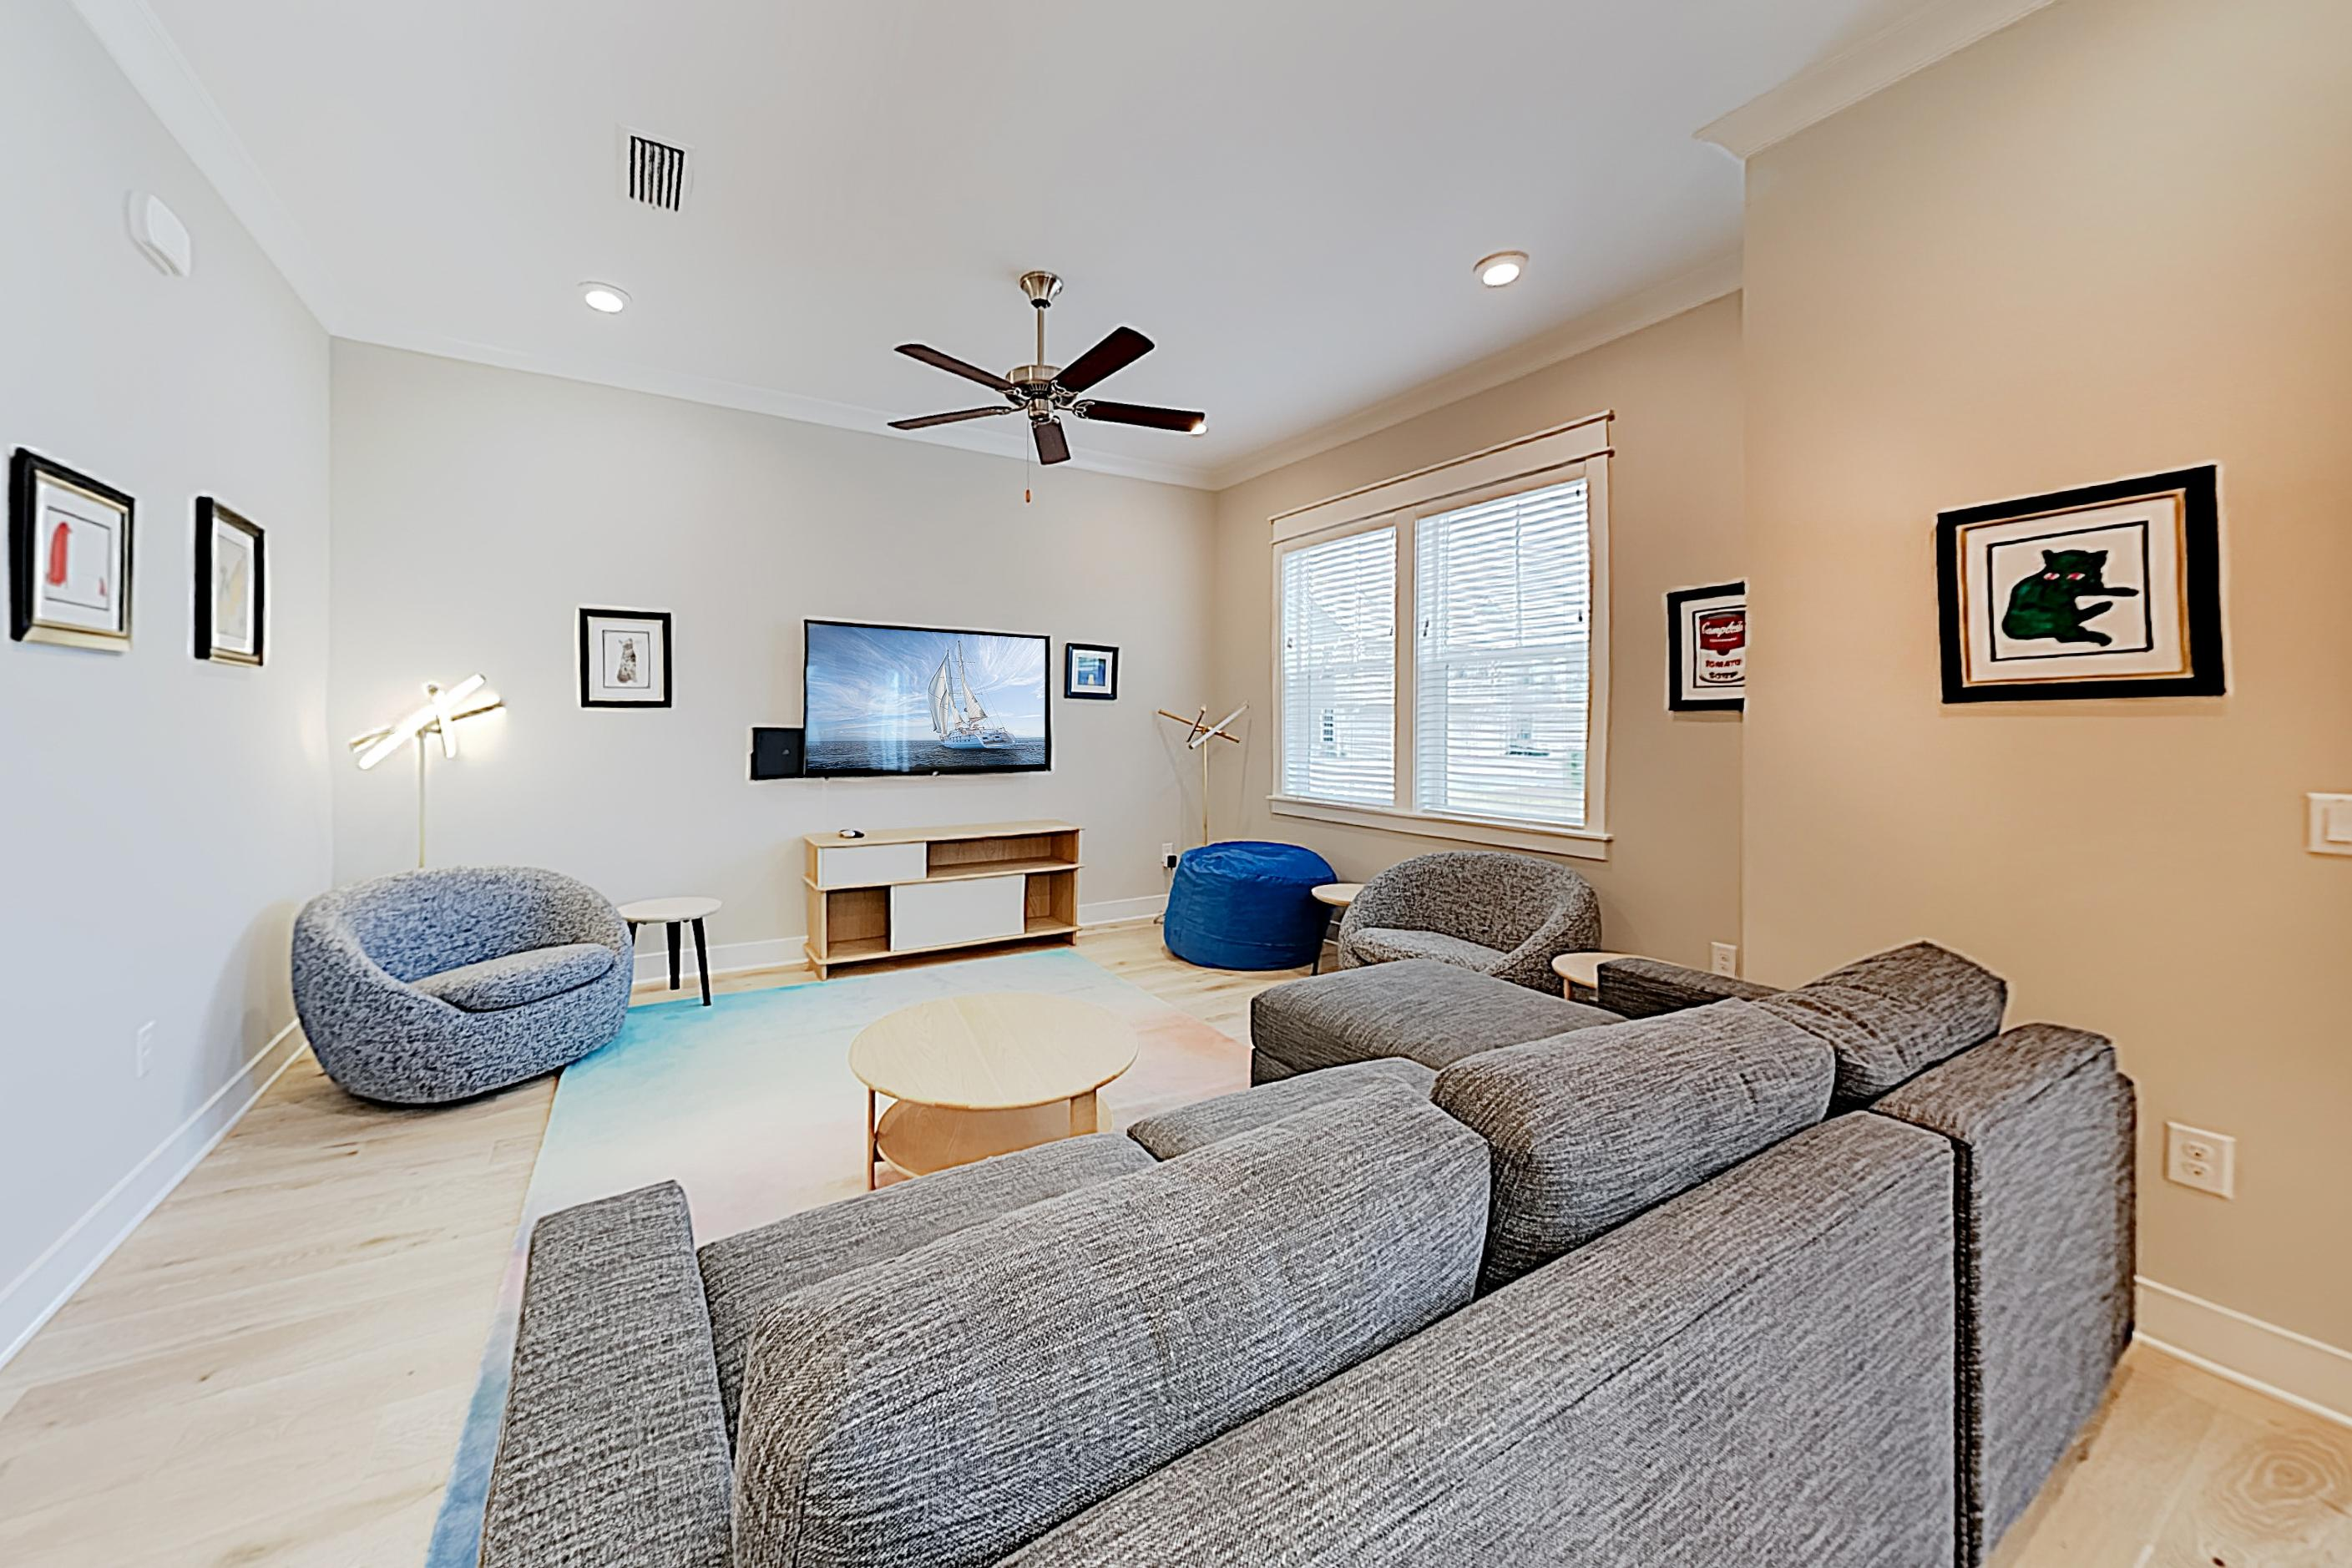 Welcome to Inlet Beach! This luxe Prominence townhome is professionally managed by TurnKey Vacation Rentals.